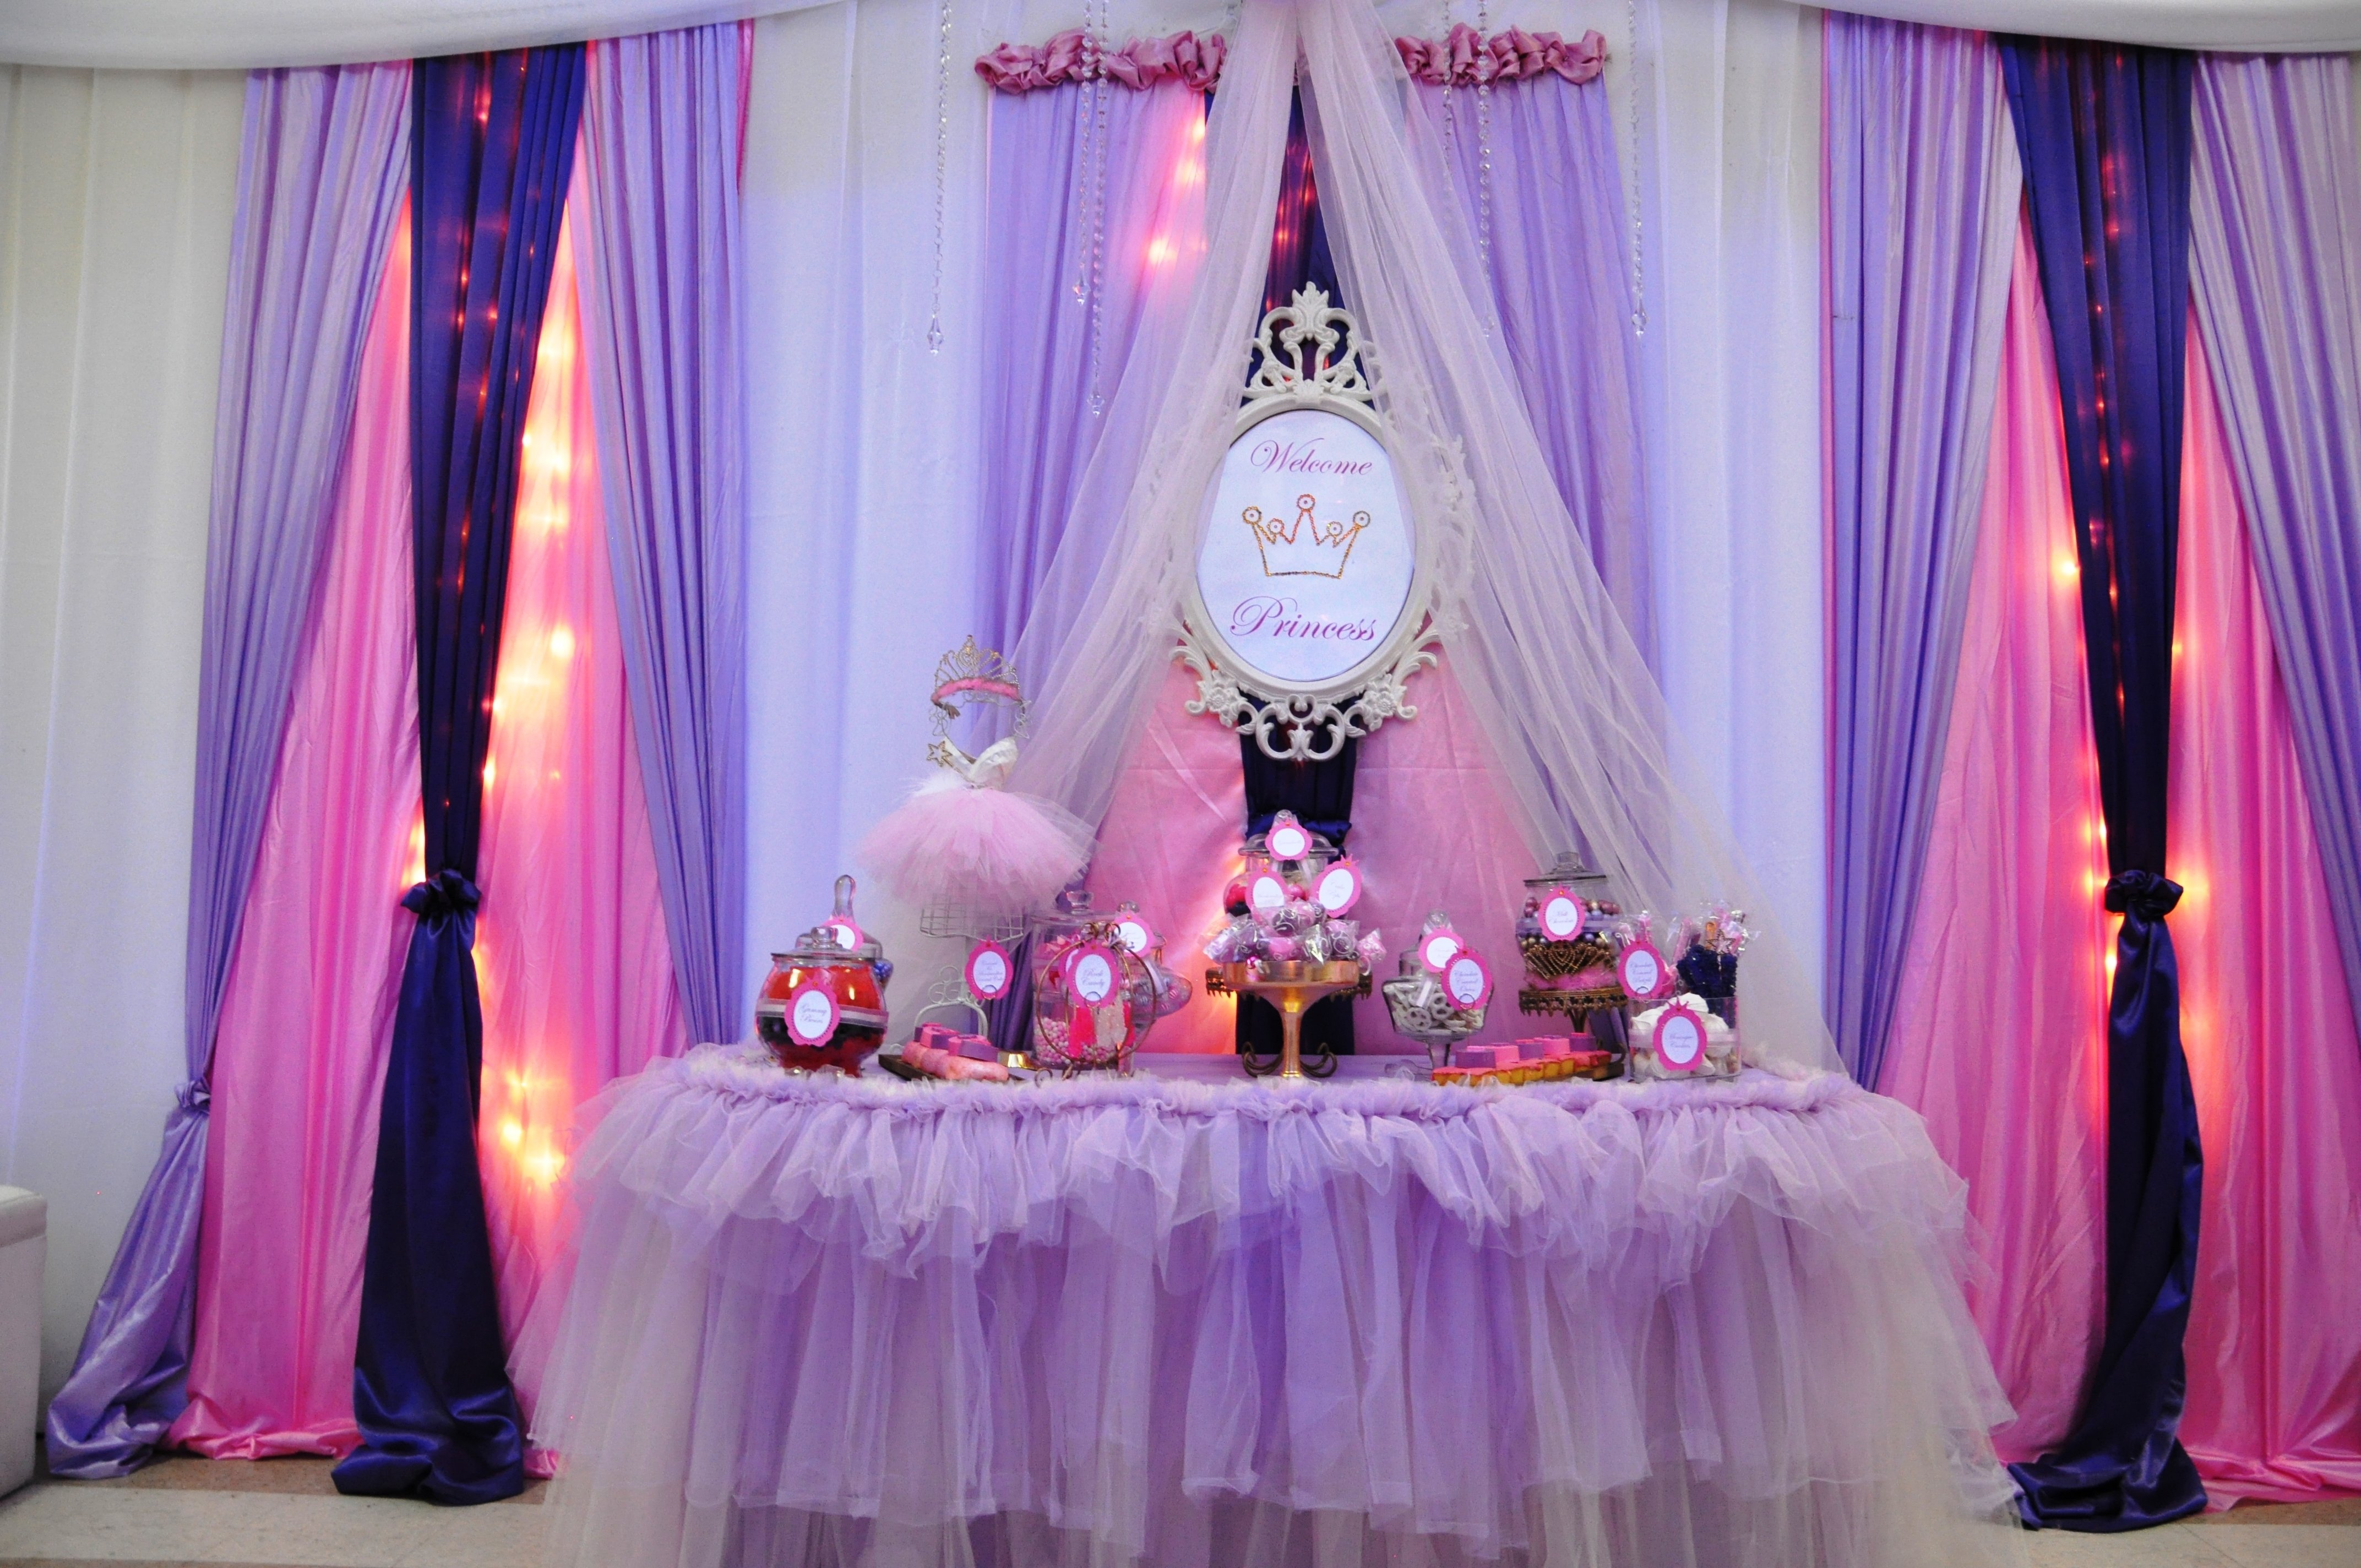 10 Spectacular Princess Theme Baby Shower Ideas photo baby shower favor ideas image